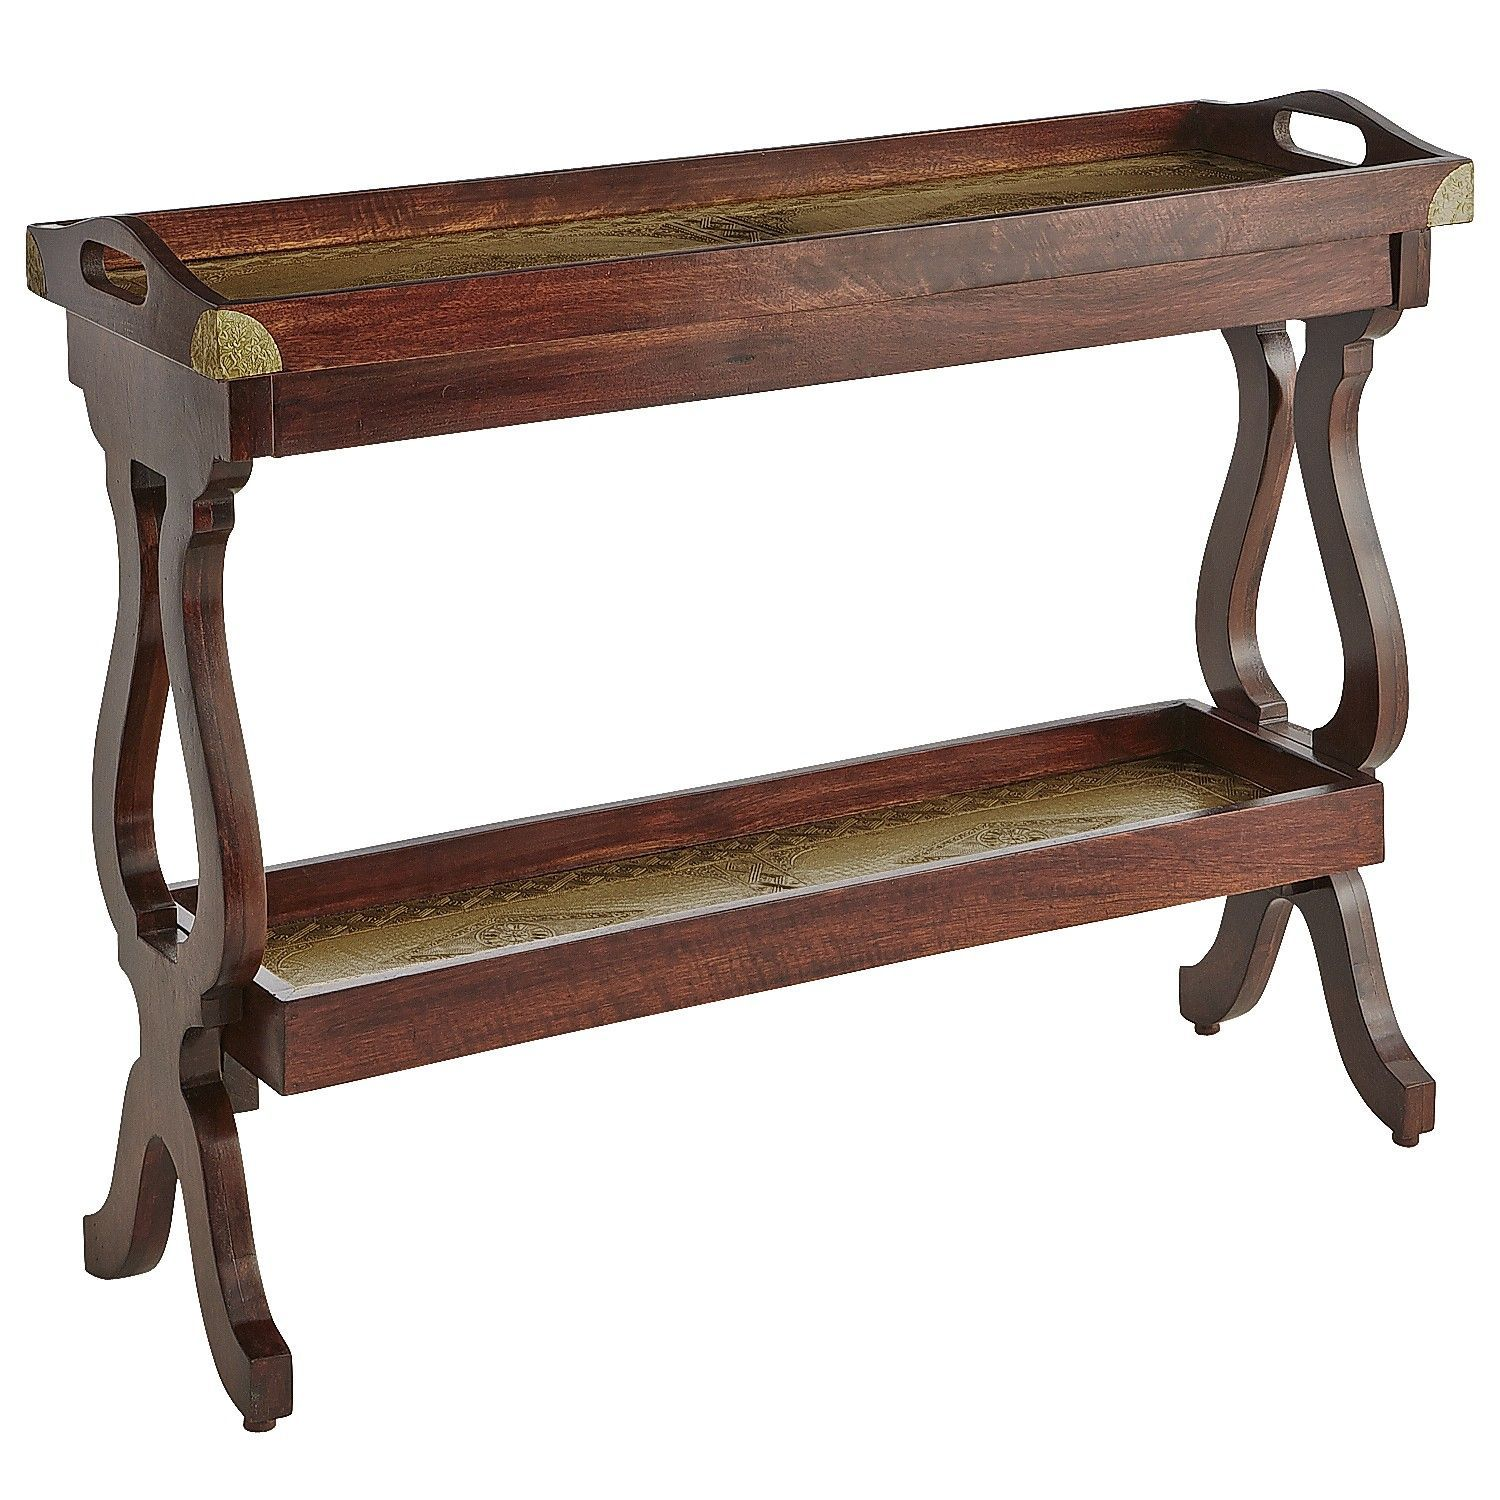 keru console table for the home tables and accent expandable outdoor dining dale tiffany wall decor pottery barn rain drum side bbq room ideas living with storage farmhouse coffee